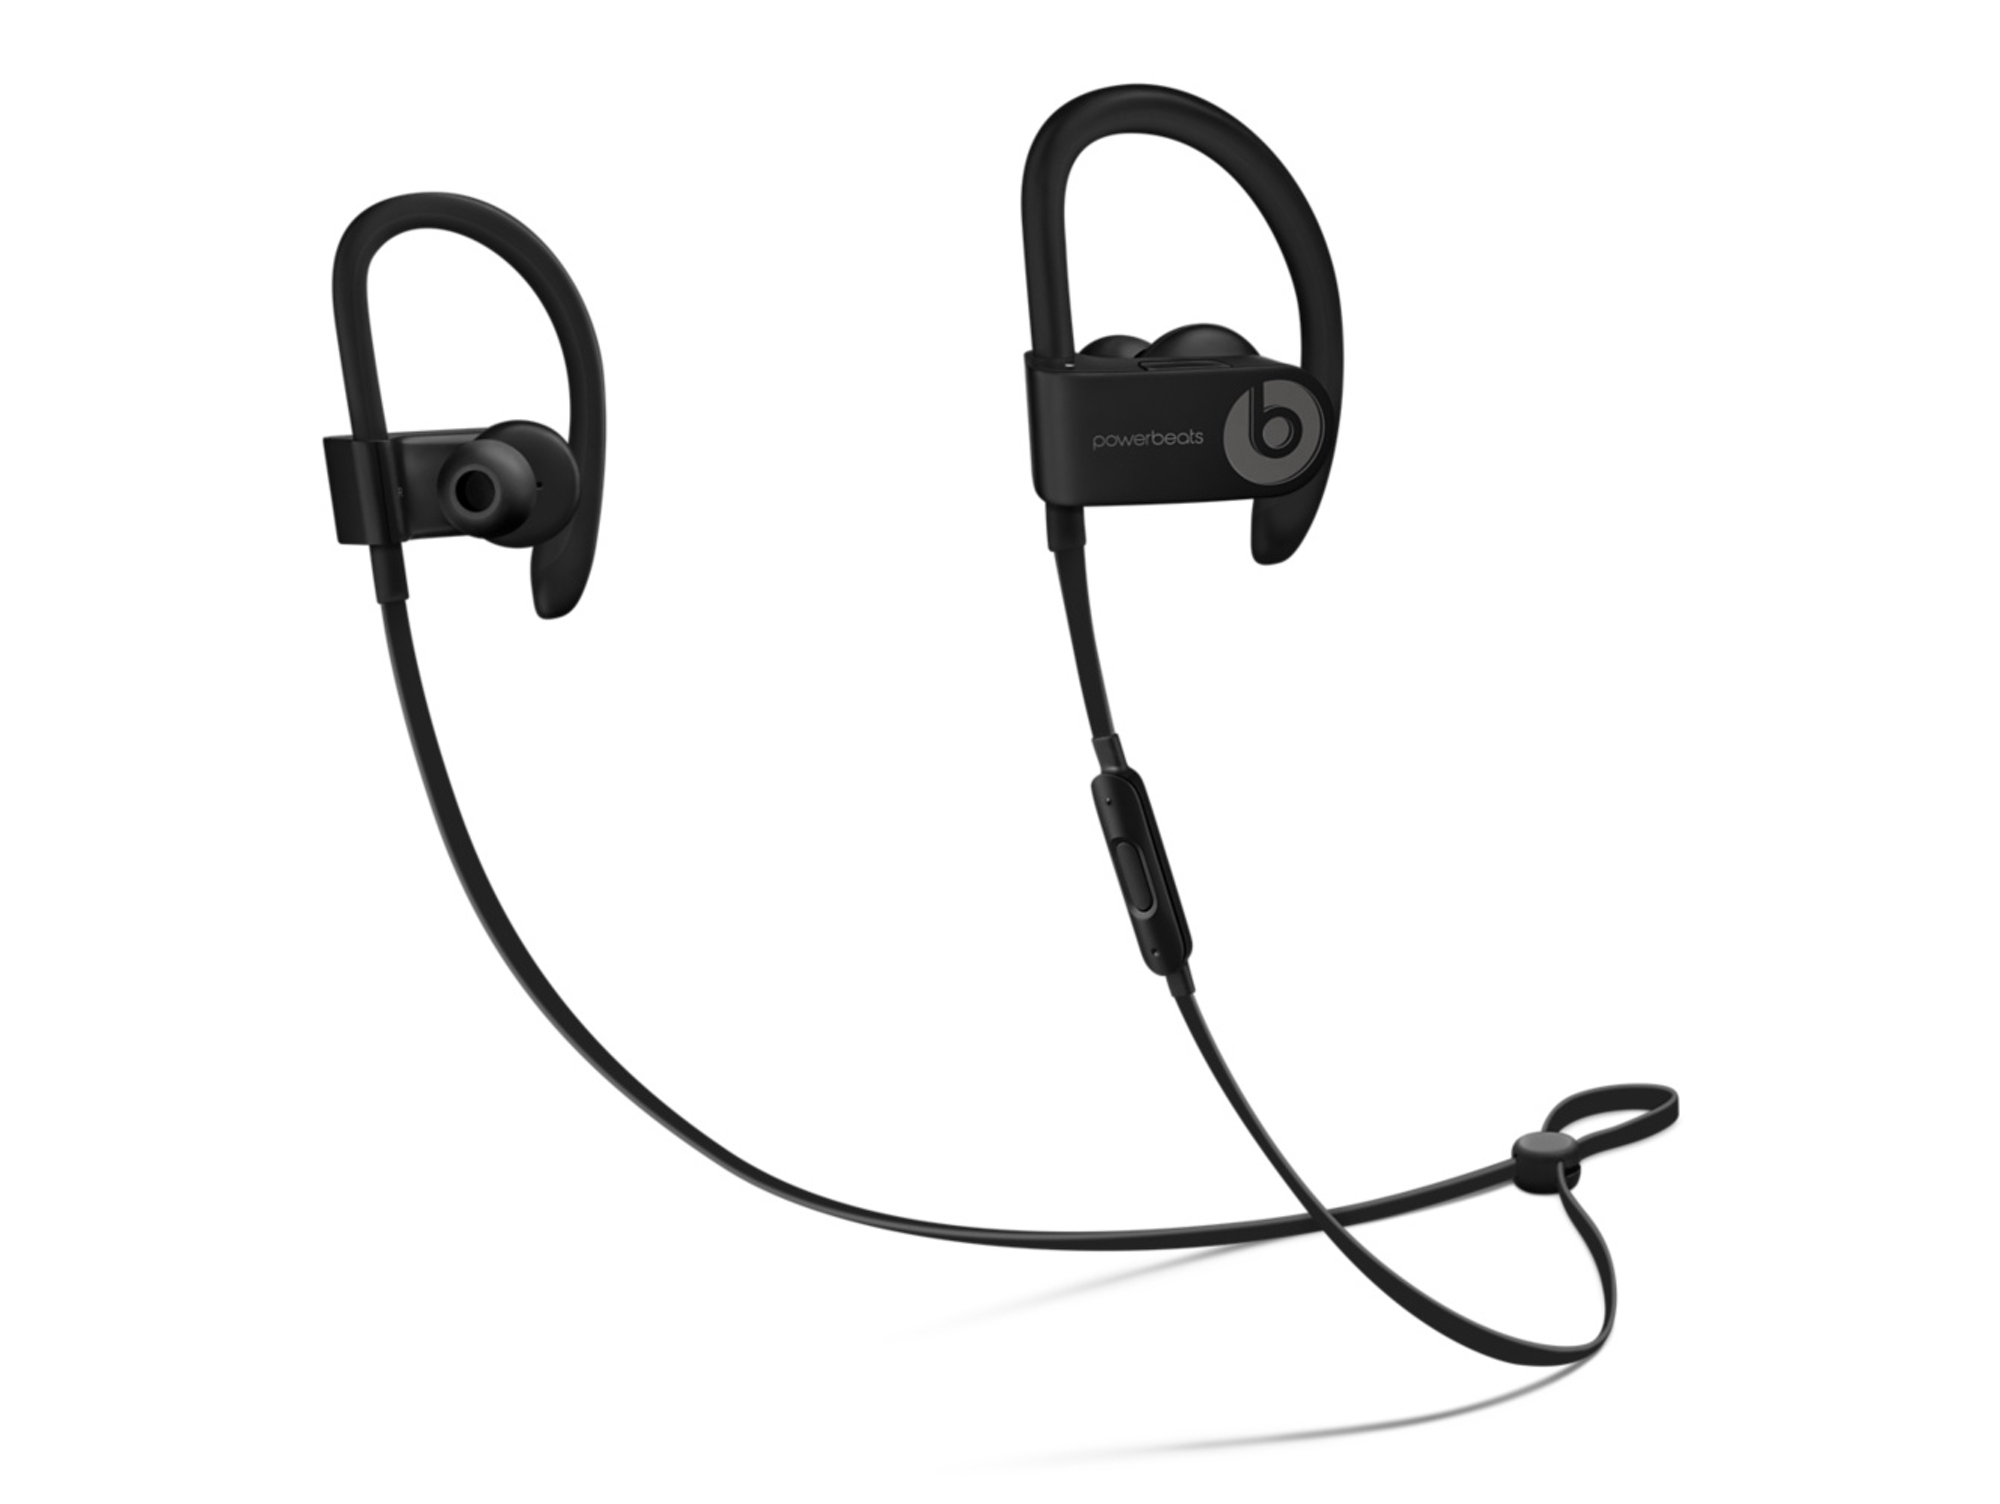 Auriculares Bluetooth BEATS Powerbeats 3 (In ear Micrófono Noise canceling Atiende llamadas Negro)